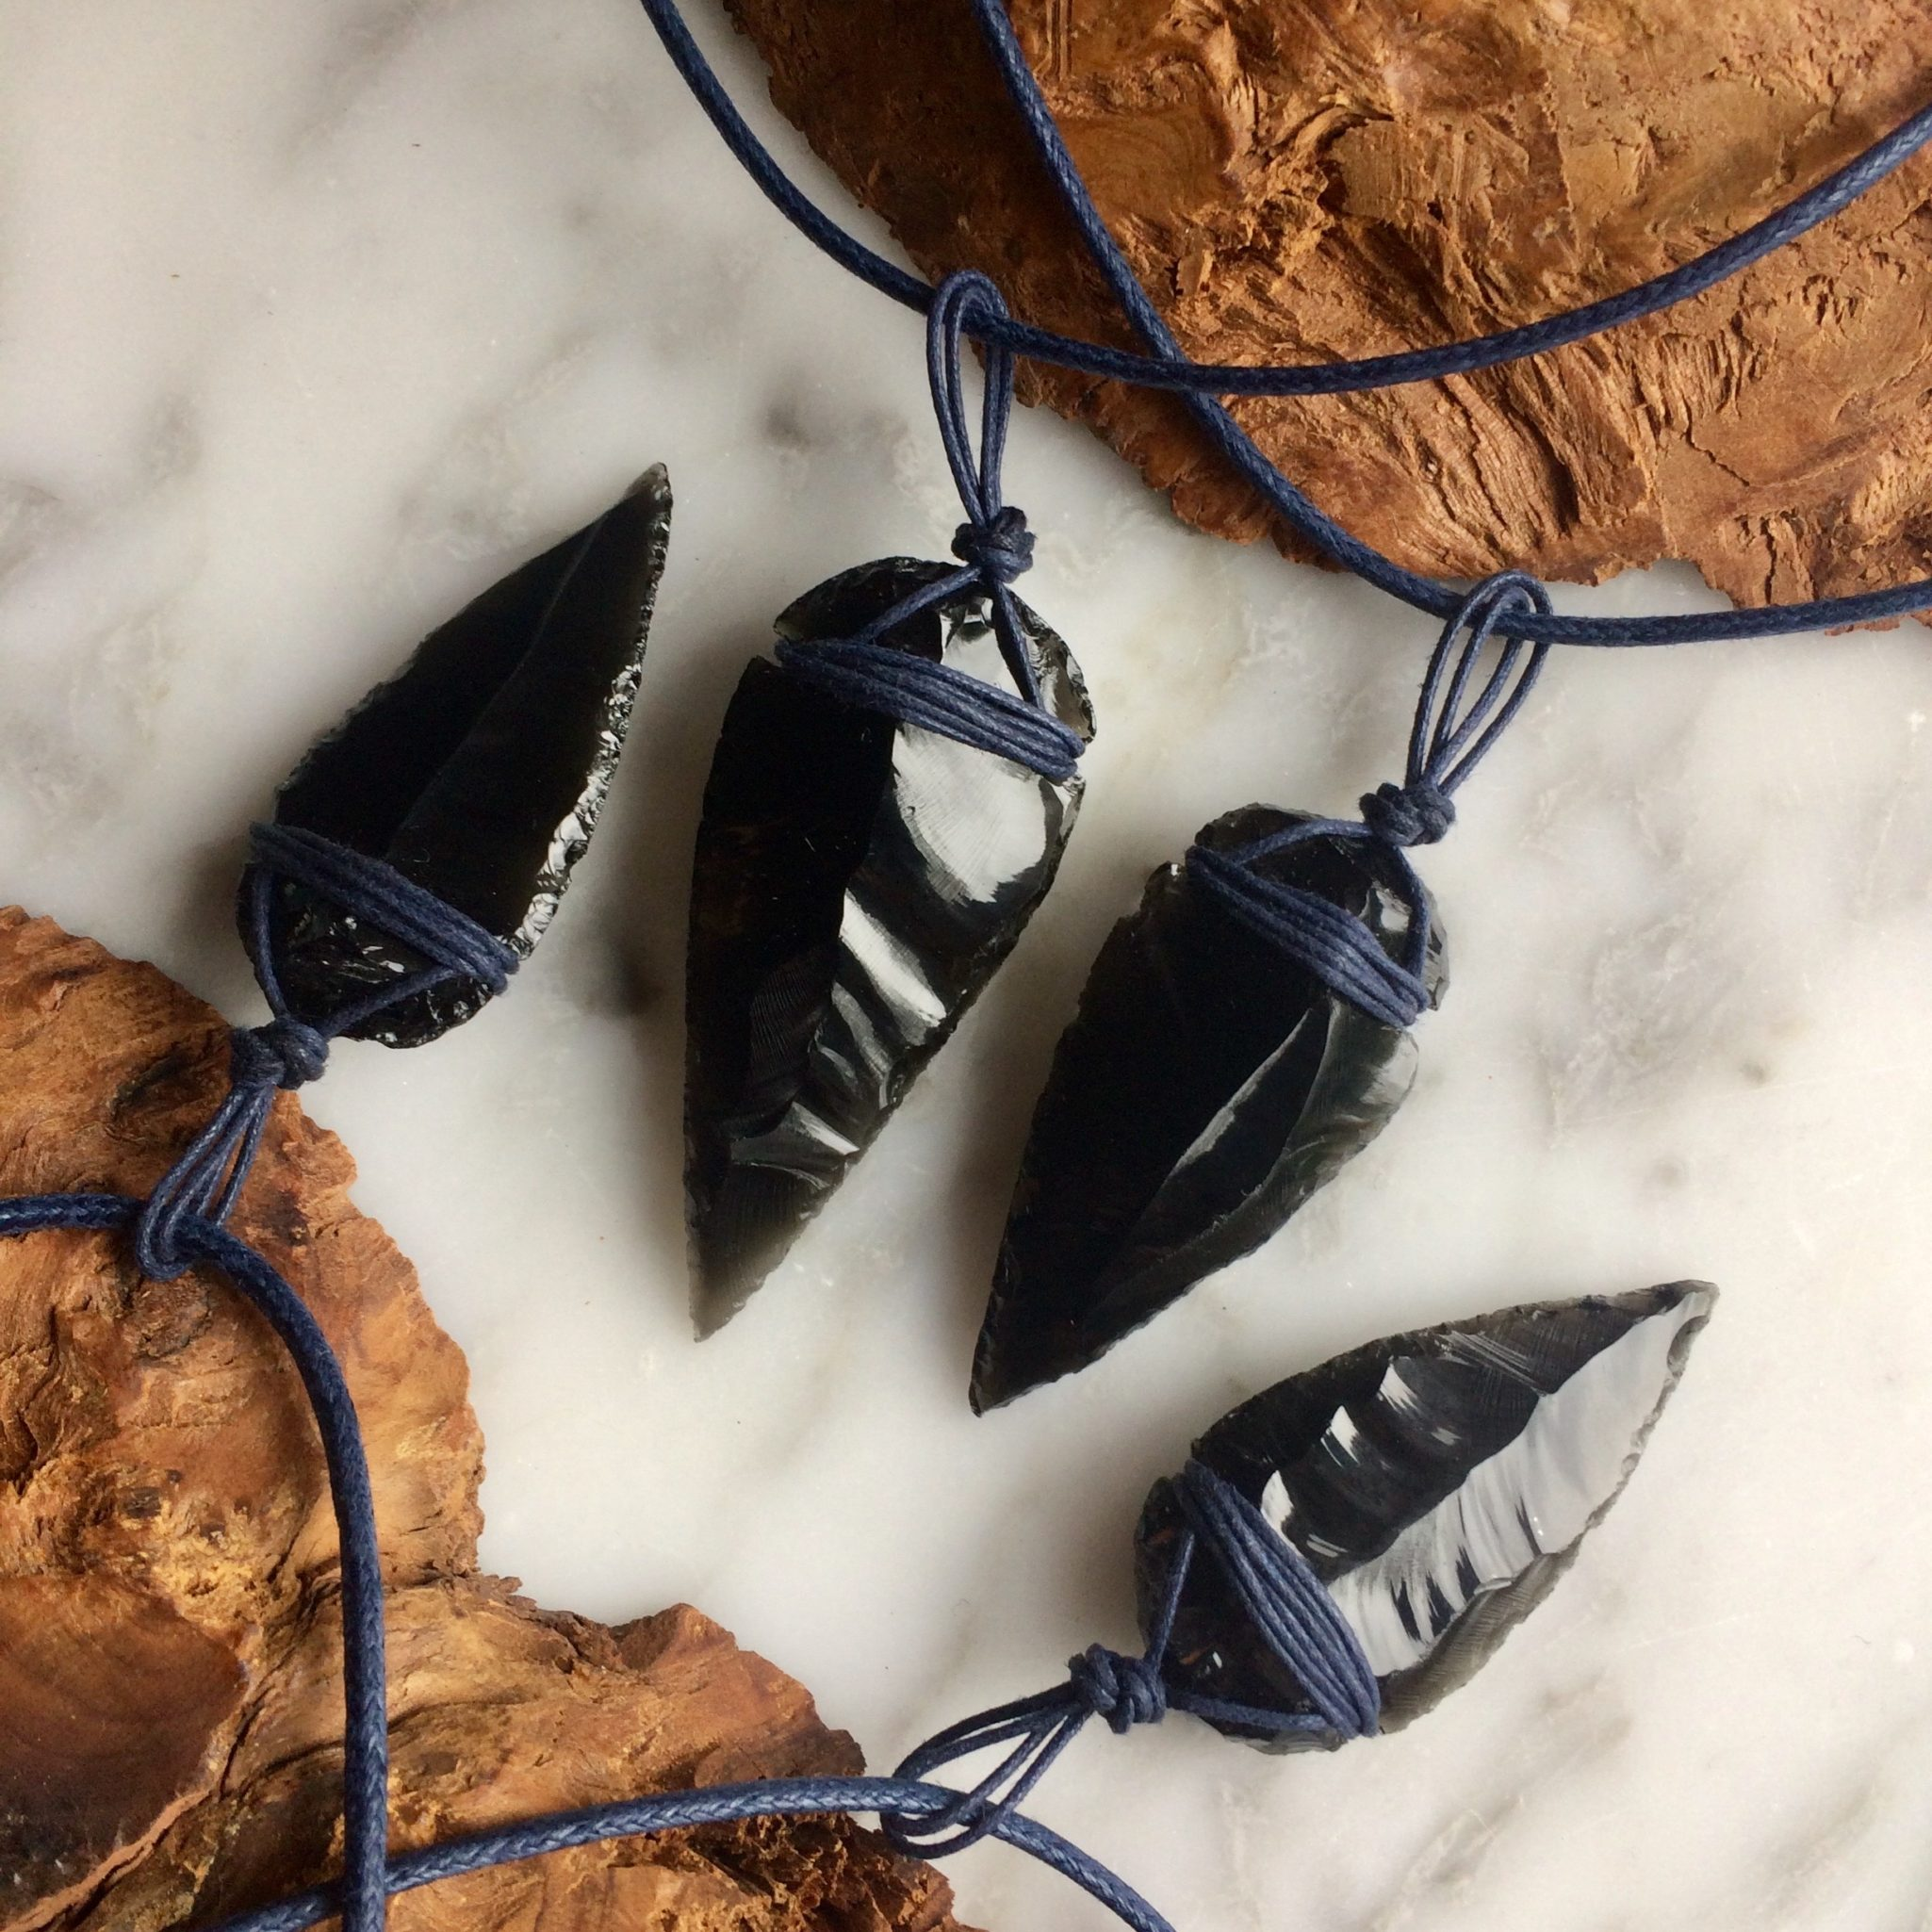 Black Obsidian and Blue Crystal Necklace